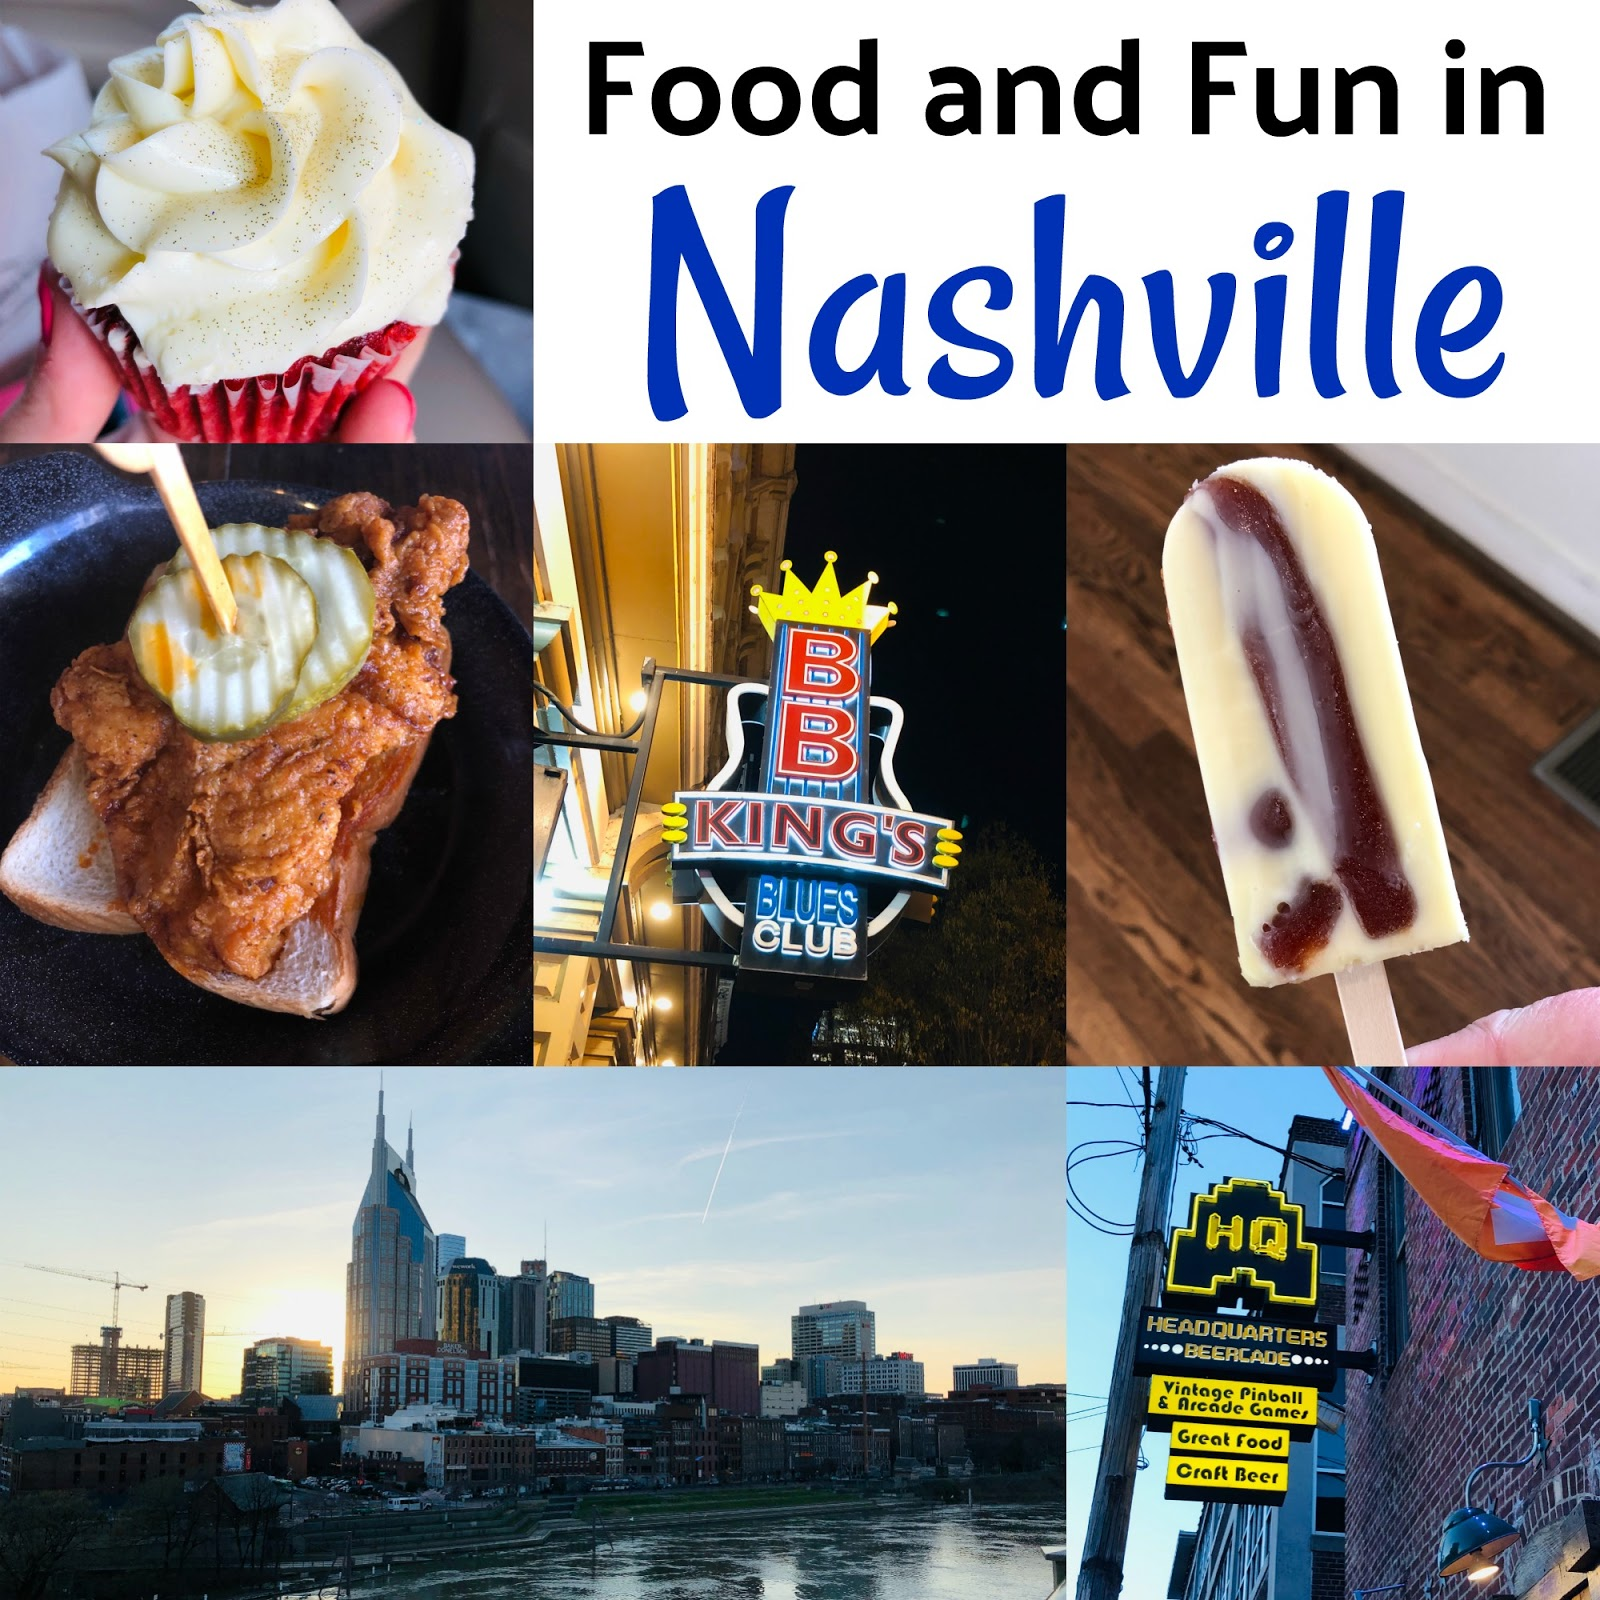 Spending a day or two in Nashville, Tennessee? Check out these wonderful restaurants, bakery, popsicle shop, arcade and more!